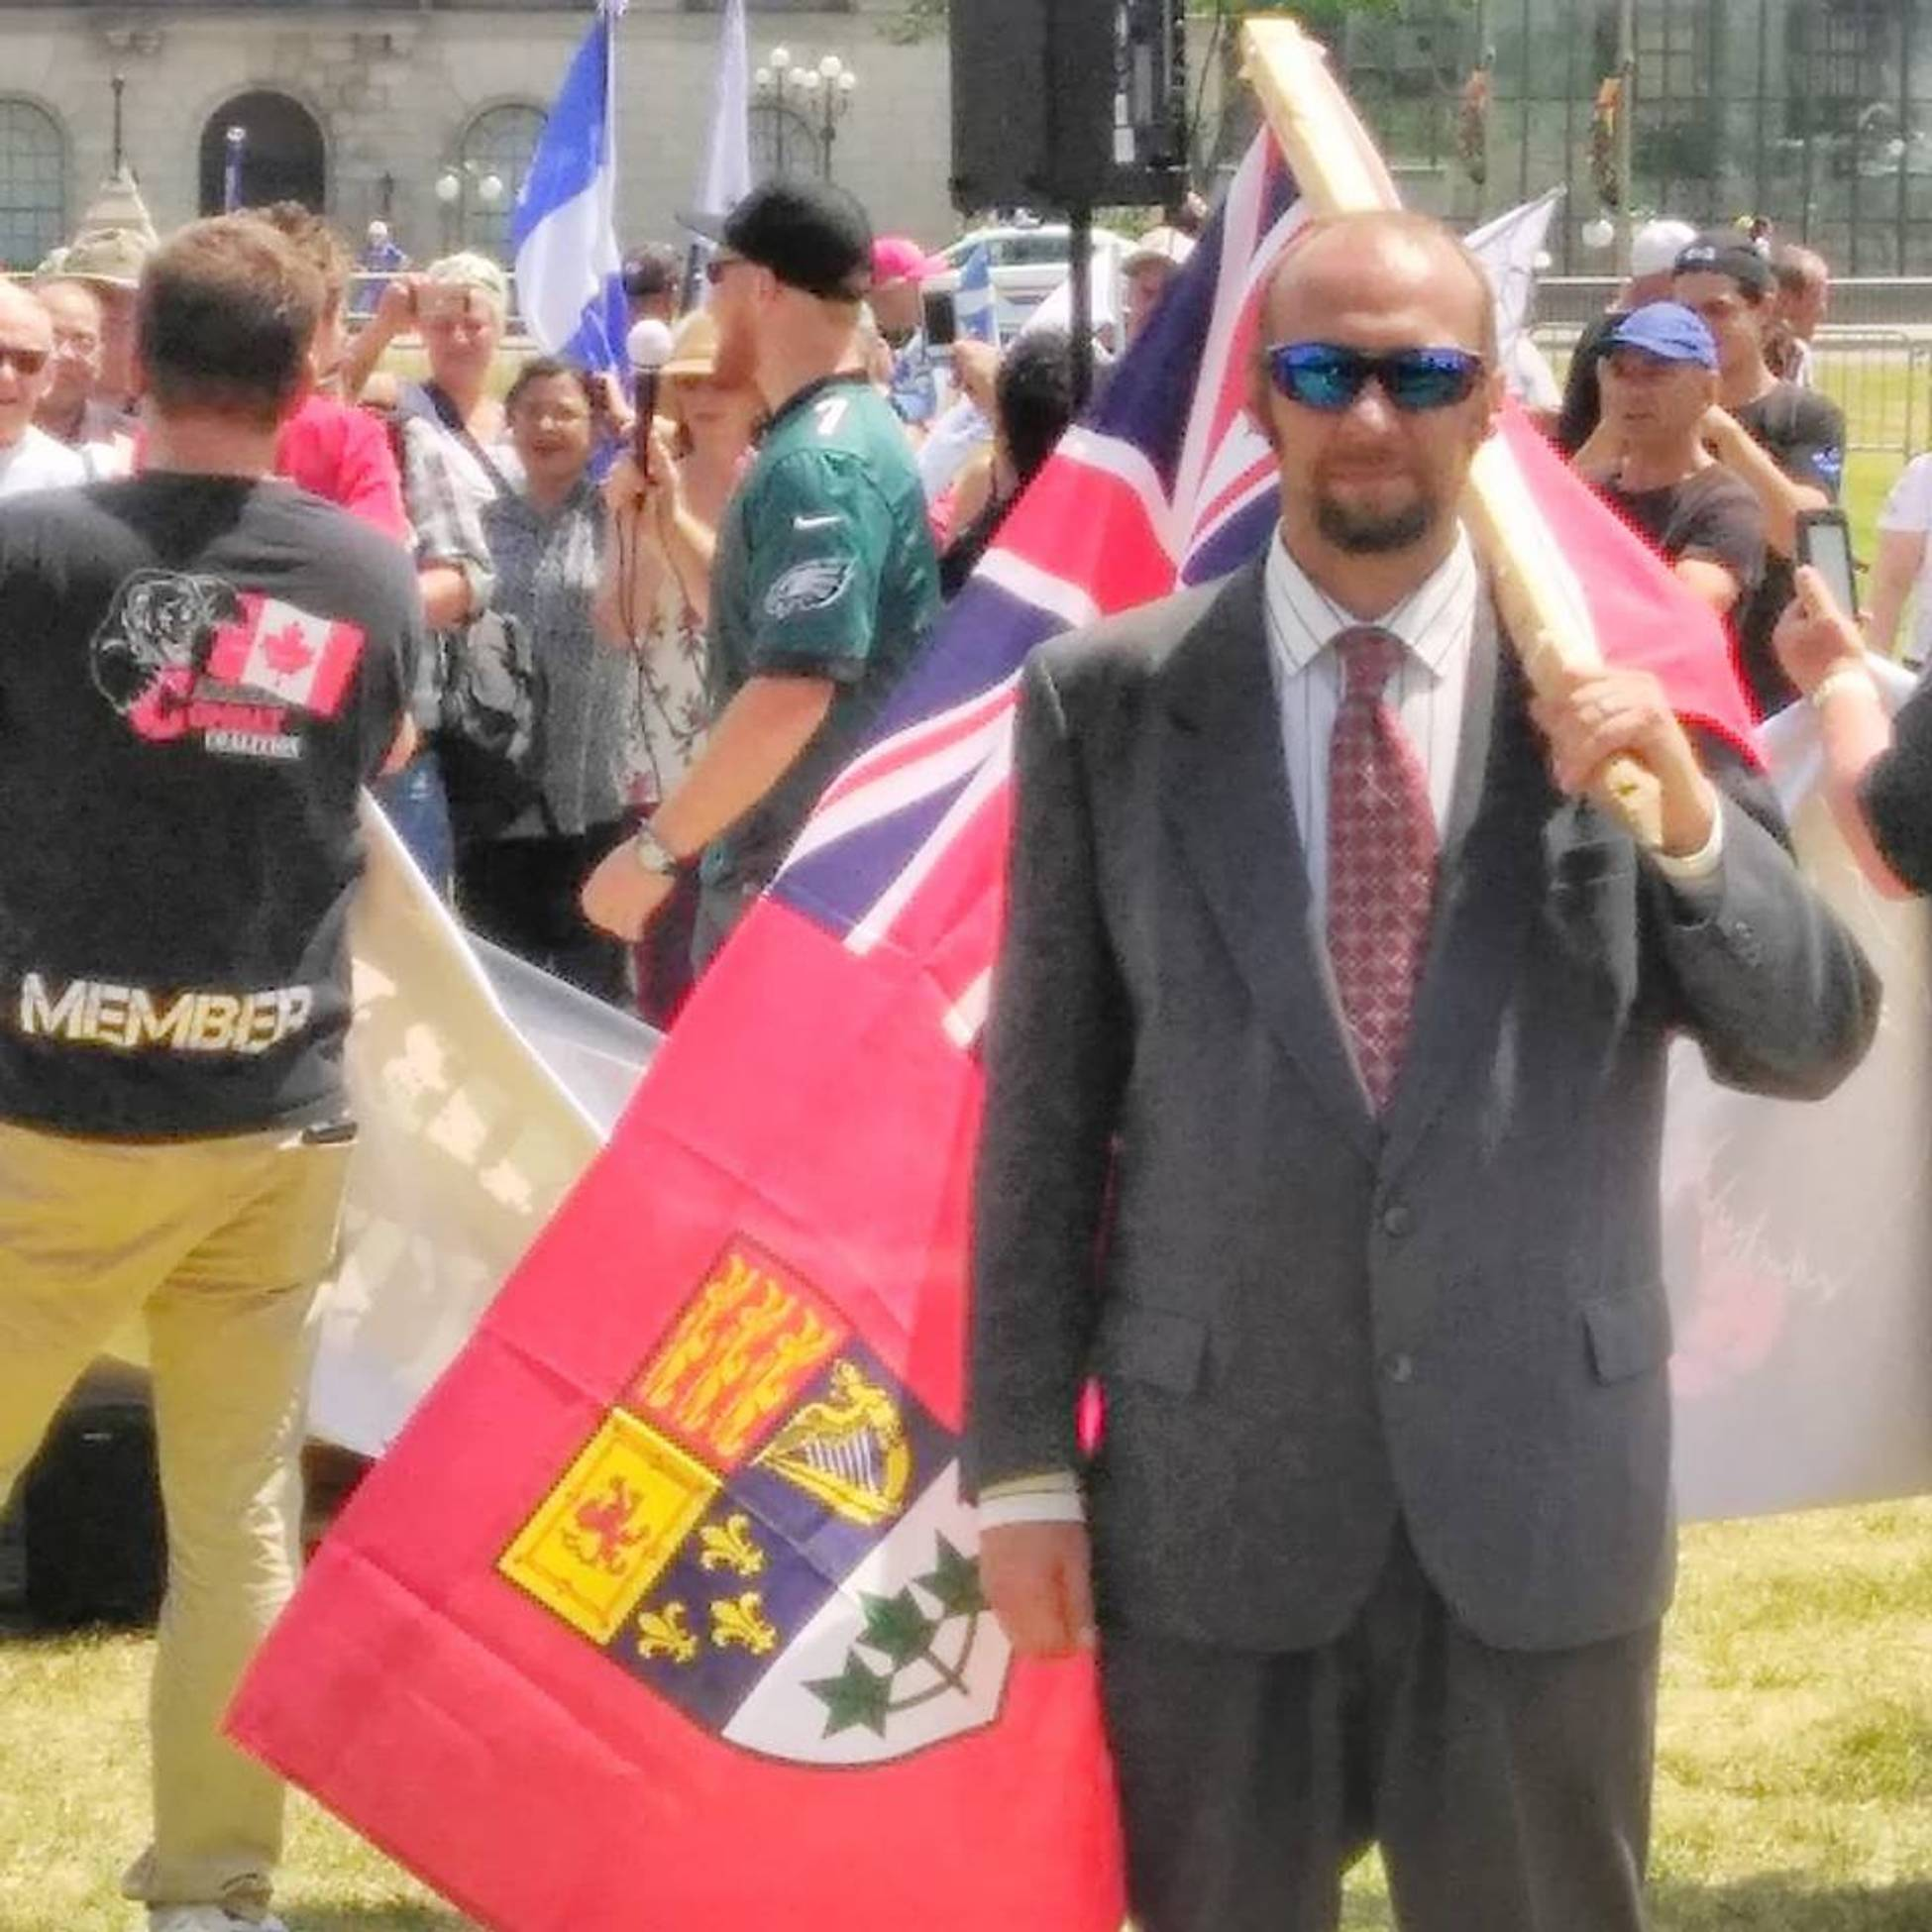 REPORT: Rally in Ottawa reveals conflict in the far-right movement